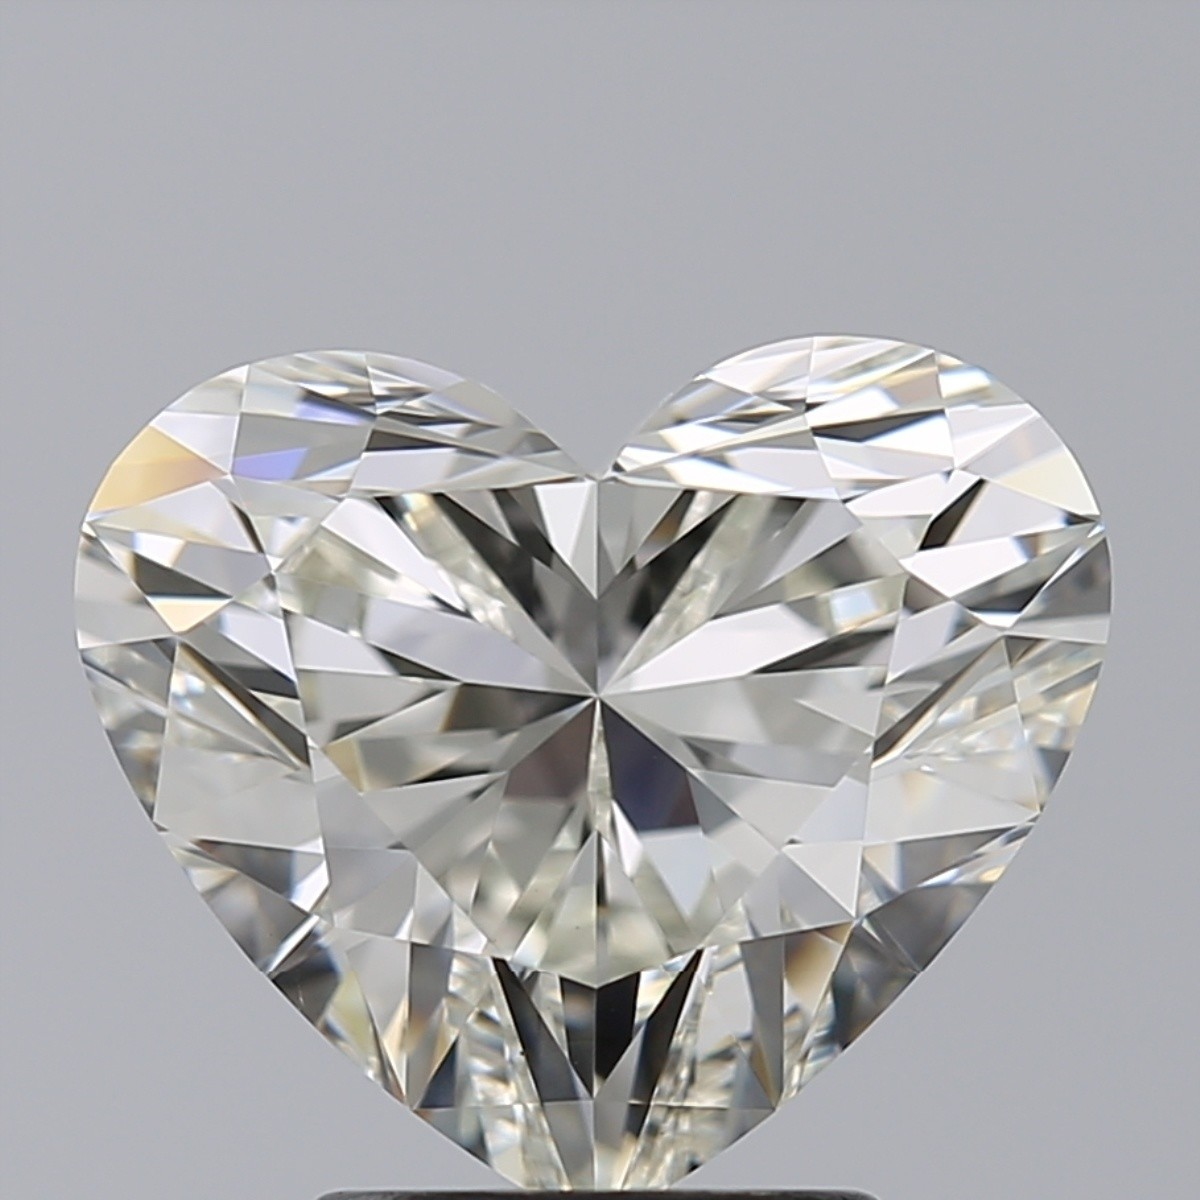 3.06 Carat Heart Diamond (J/VS1)